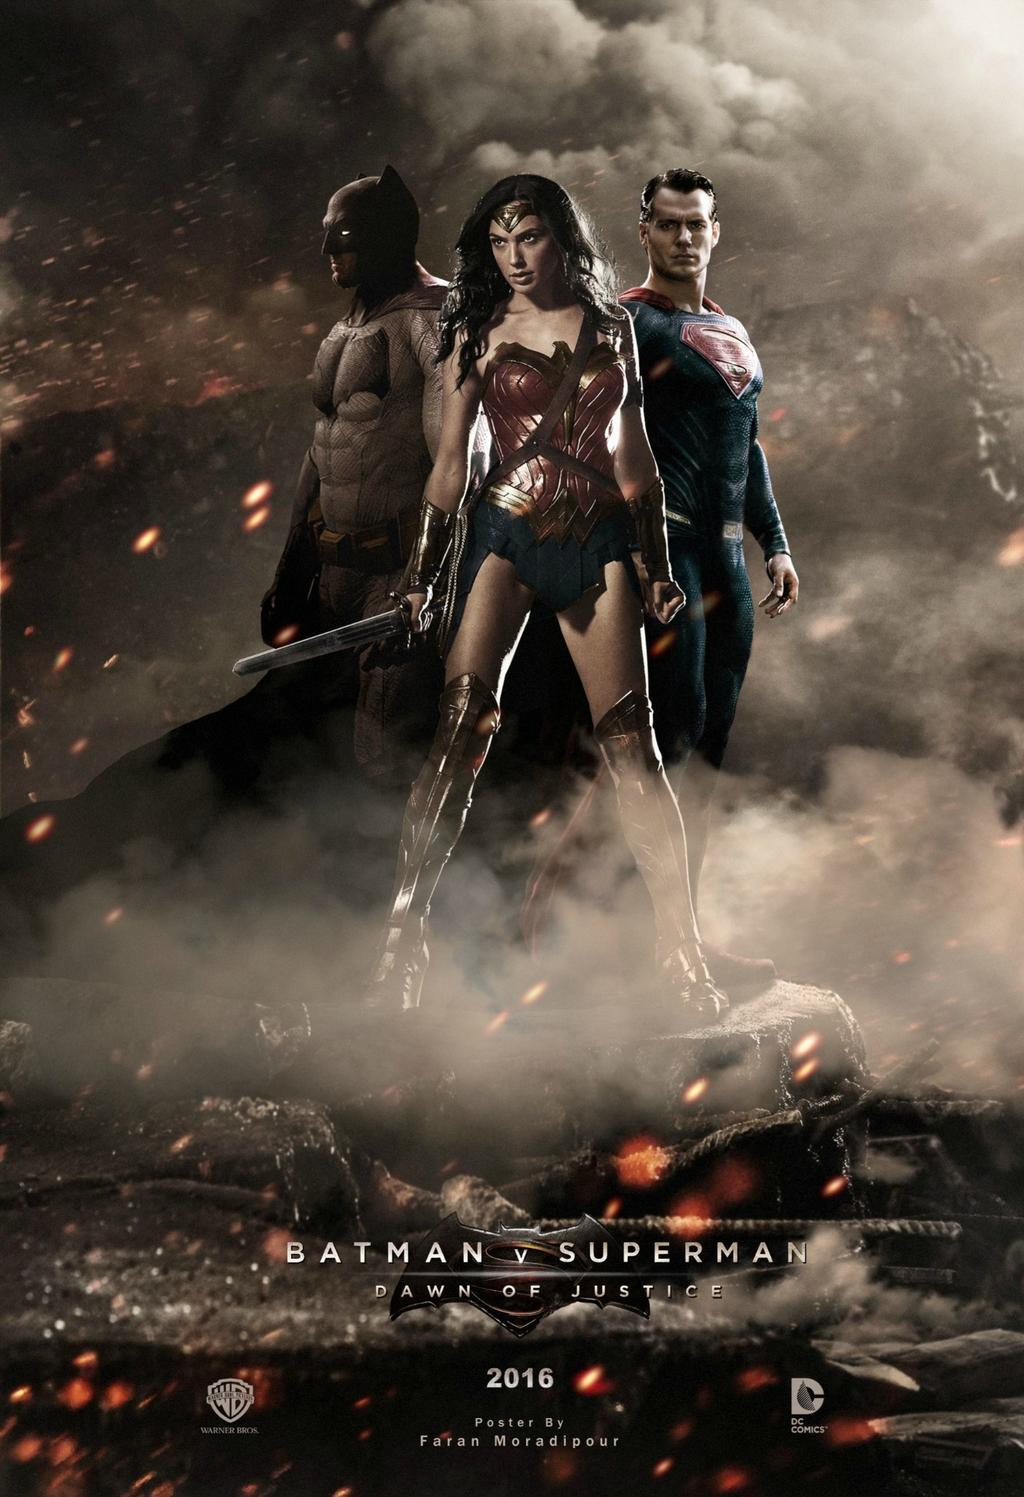 Fan made posters for Batman v Superman featuring Gal Gadot ...